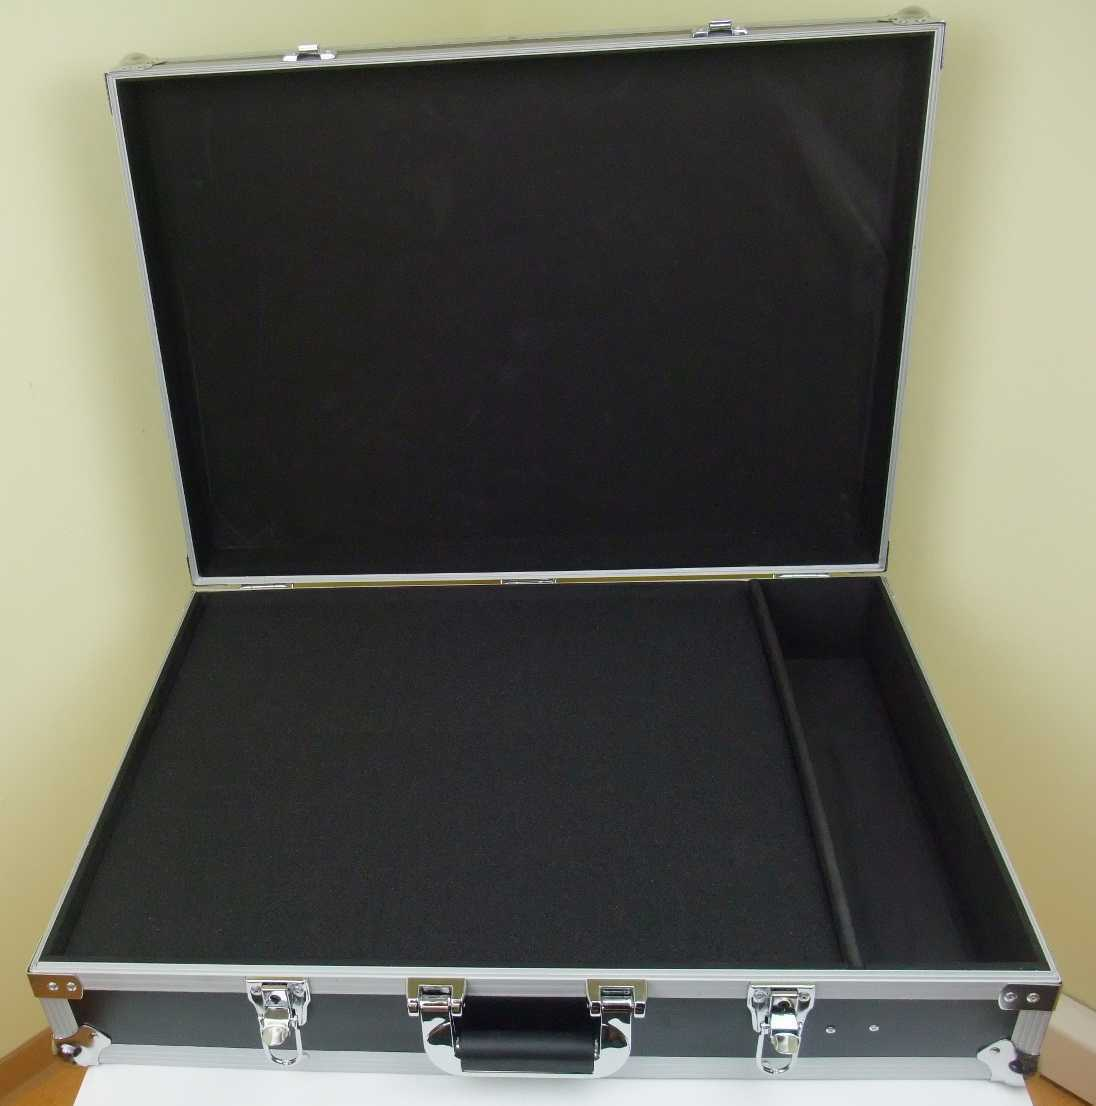 ROADINGER Koffercase FOAM K-2 71x52x18cm Transportkoffer Toolcase Flightcase